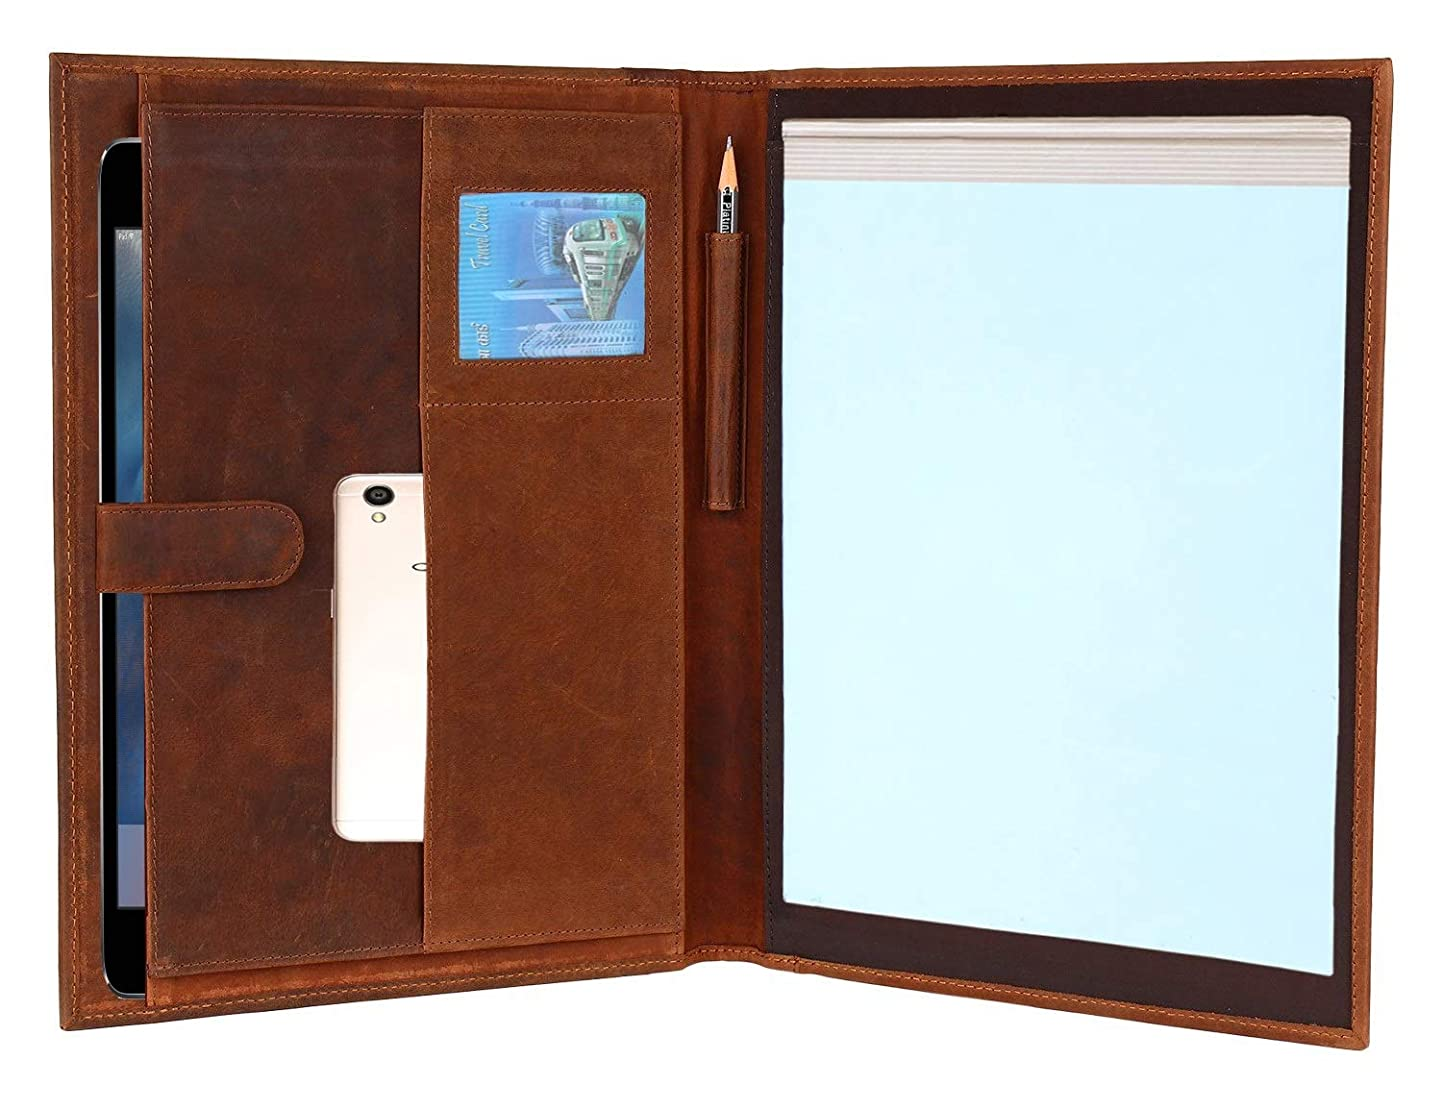 Handmade GENUINE LEATHER Business Portfolio by Rustic Town | Professional Organizer Men & Women | Durable Leather Padfolio with Sleeves for documents and notepad (Brown) nzfwbfkqldz0